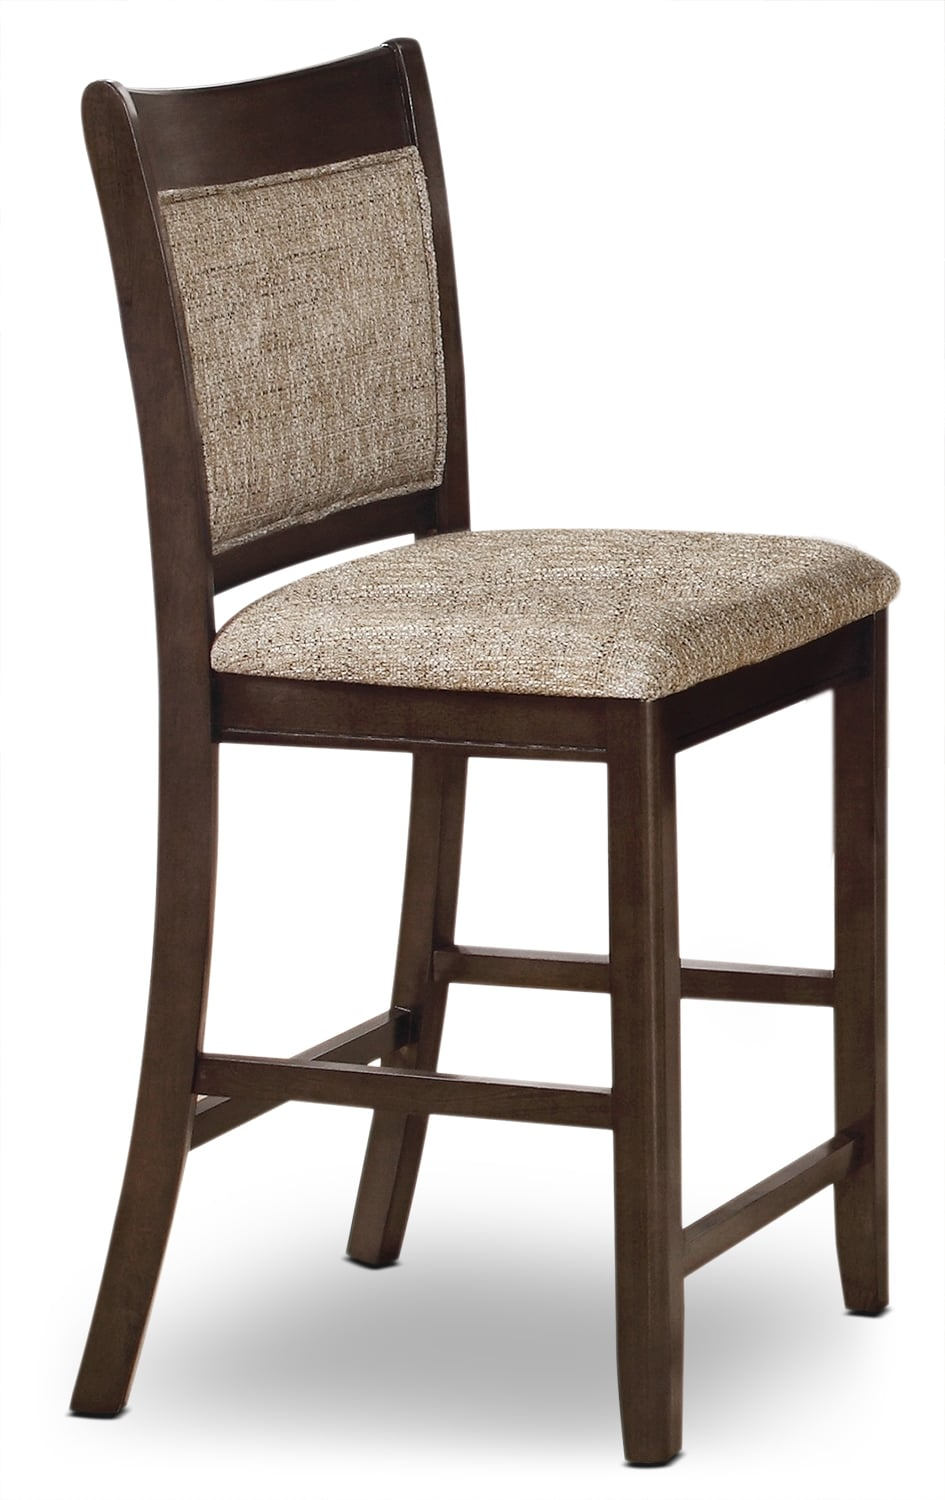 Dining Room Furniture - Adell Counter-Height Dining Chair - Brown-Grey